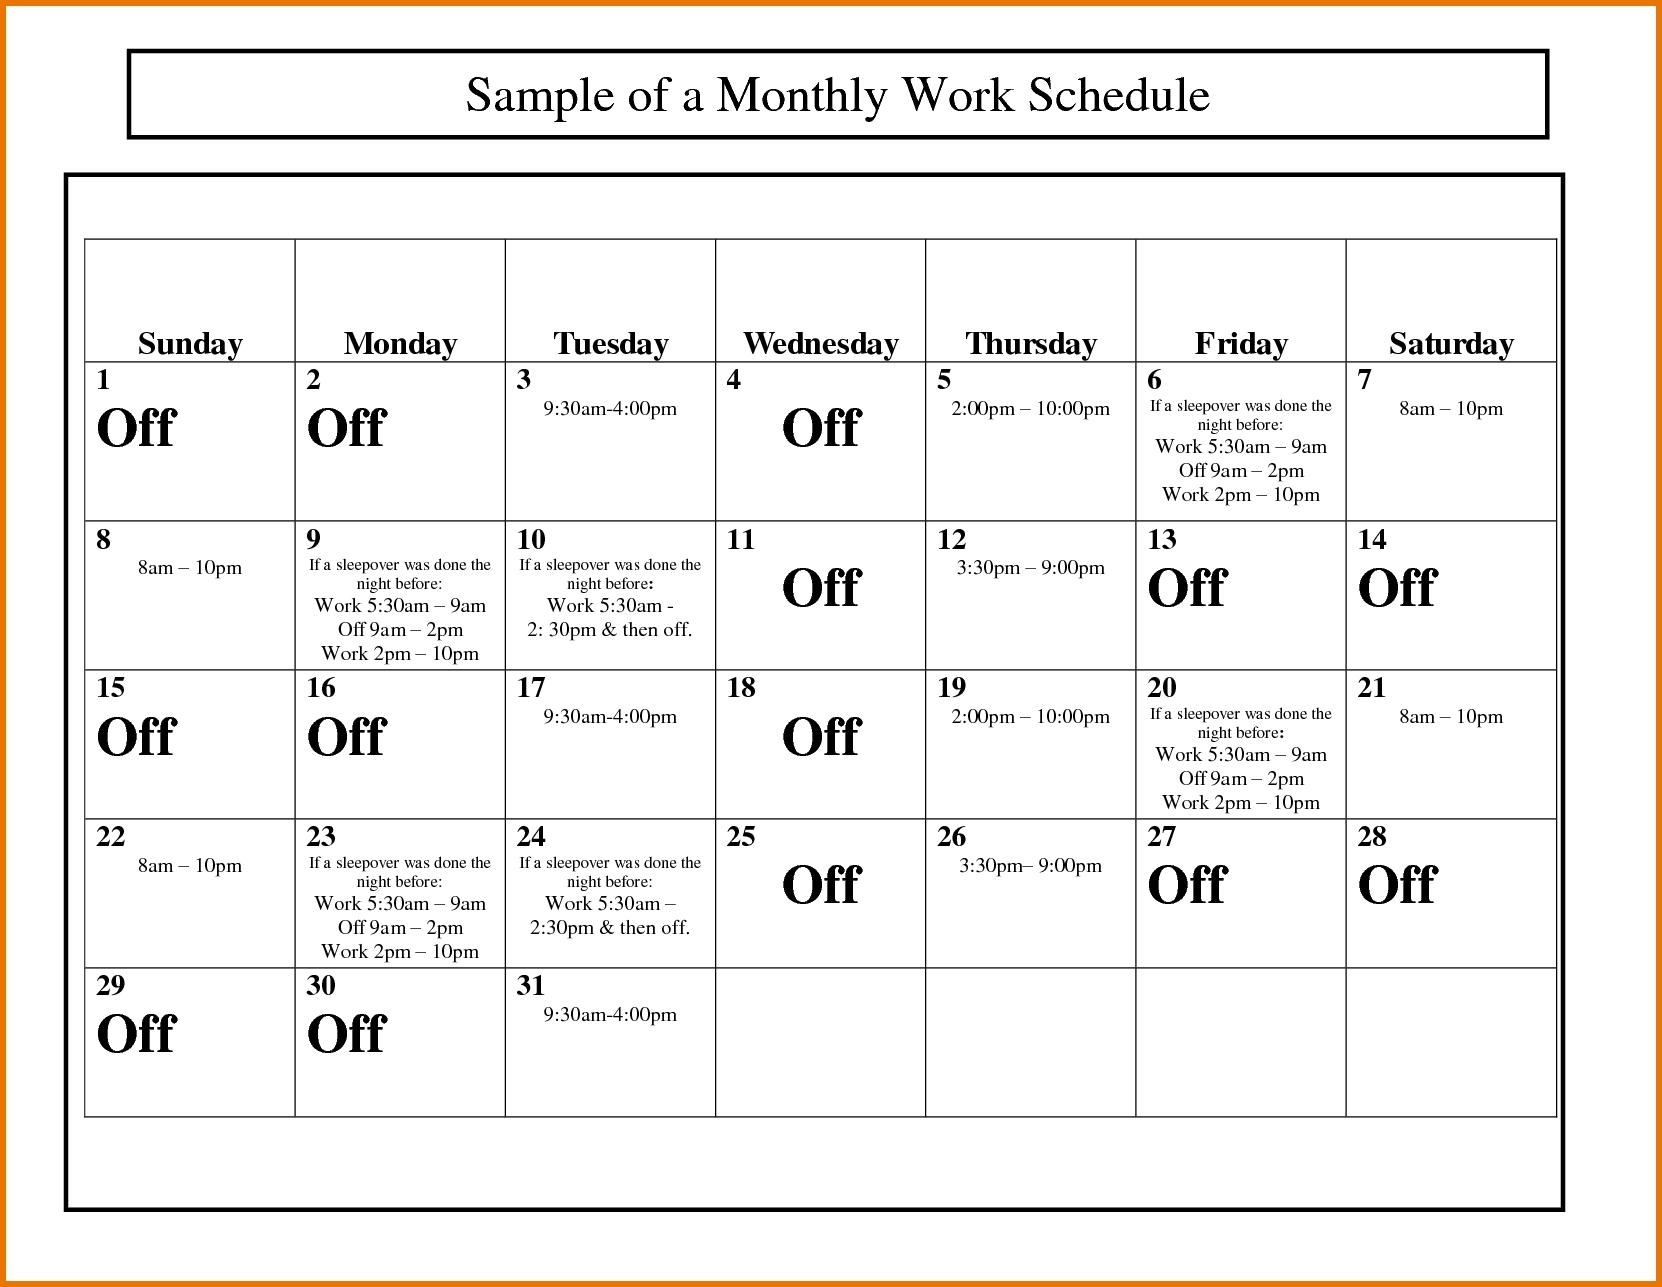 Monthly Work Schedule Calendar Template | Blank Calendar Design 2017 For Monthly Work Schedule Template Pdf